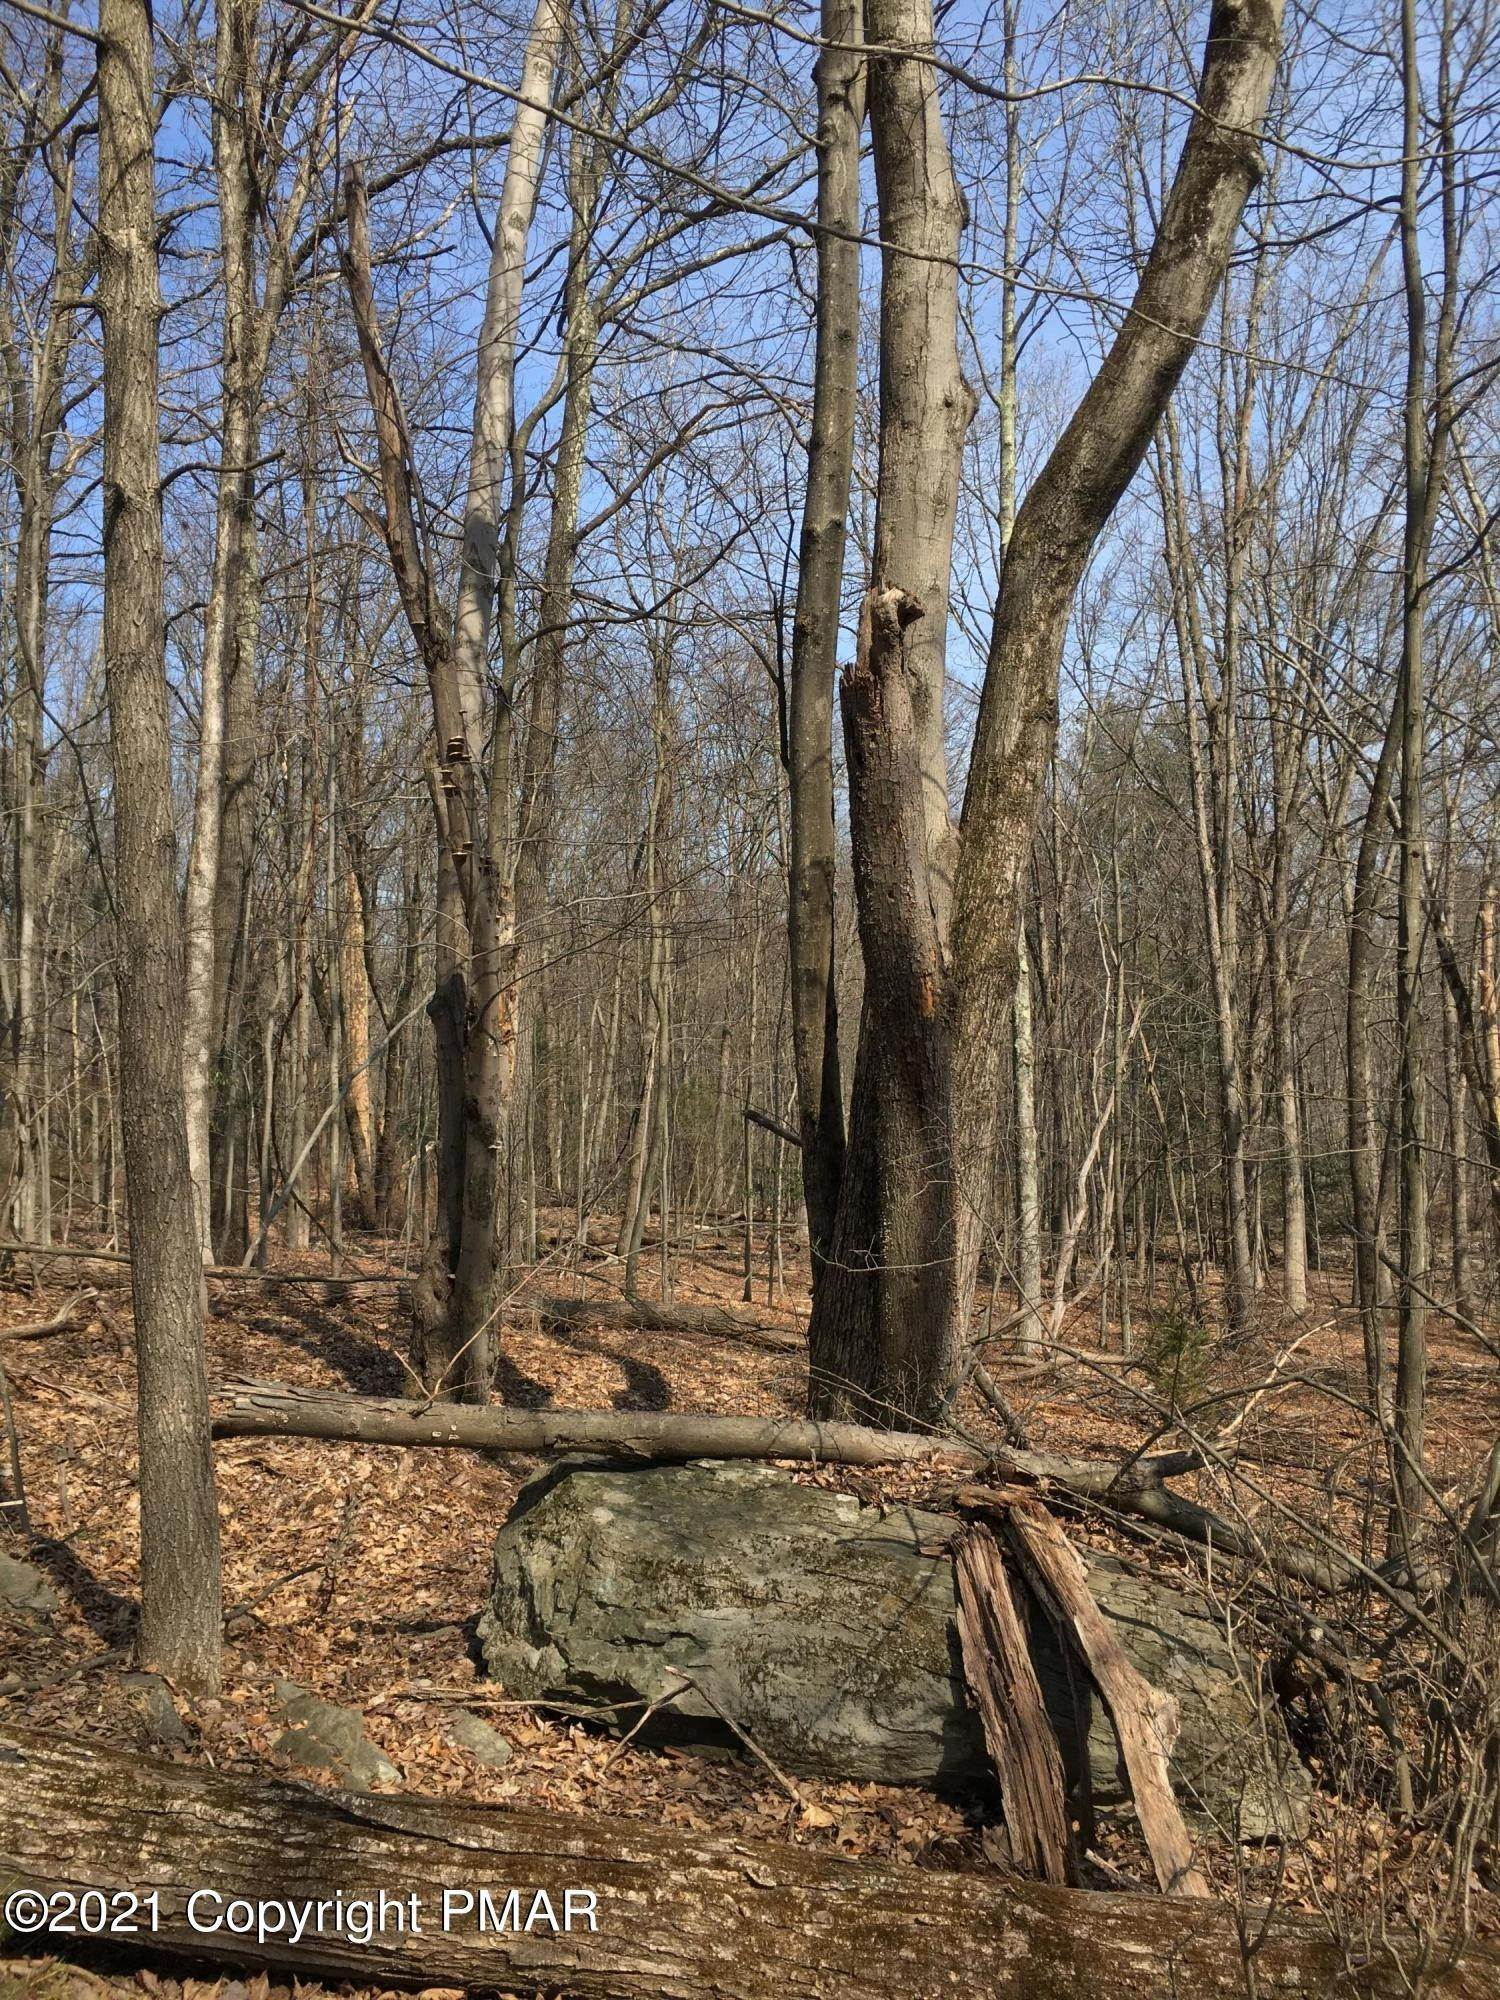 2. Land for Sale at 576 T Frantz Hill Rd Scotrun, Pennsylvania 18355 United States